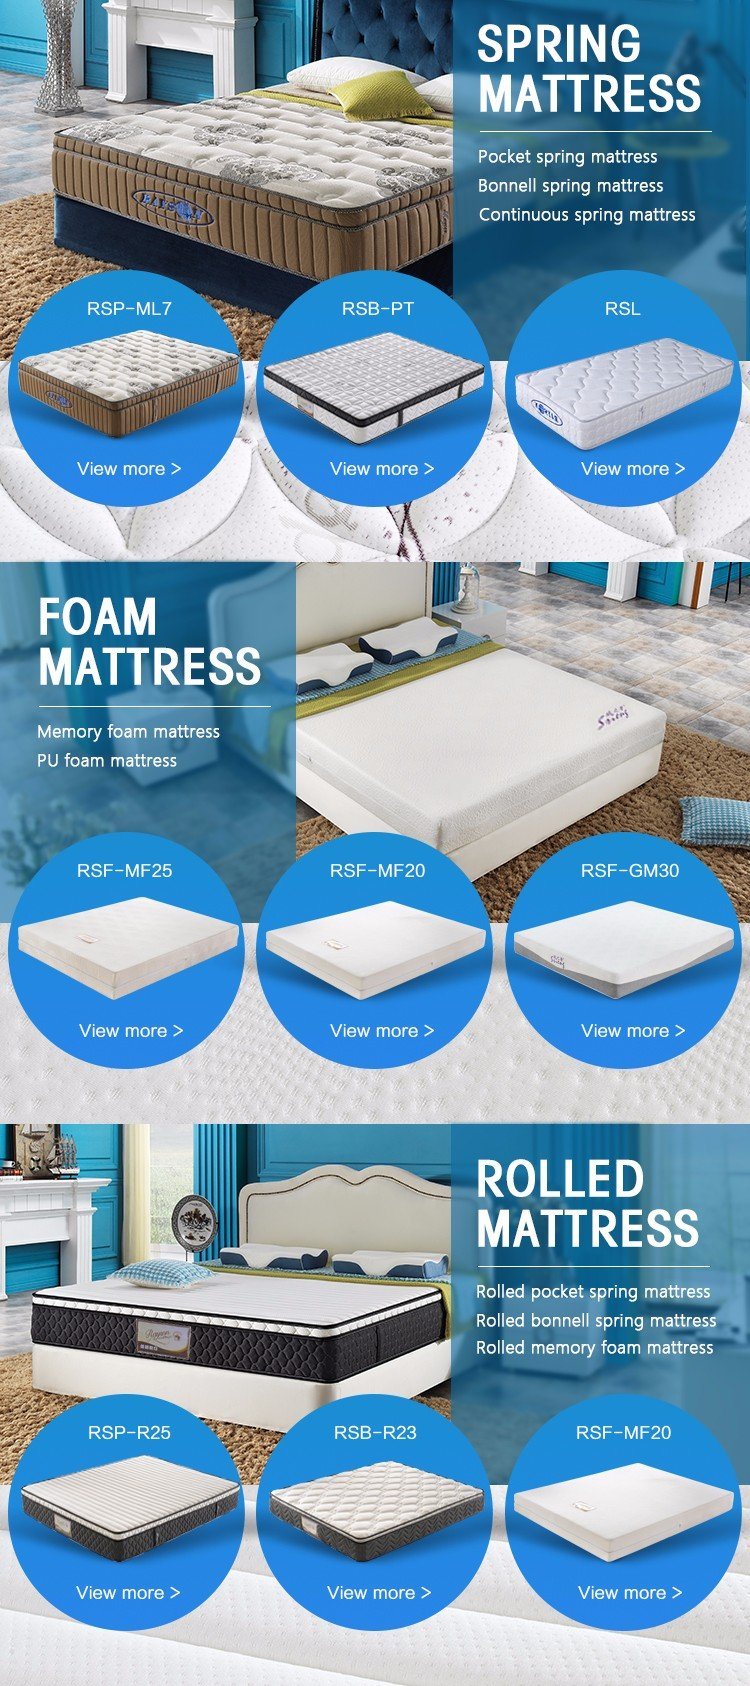 Rayson Mattress bedroom sensaform mattress Suppliers-7